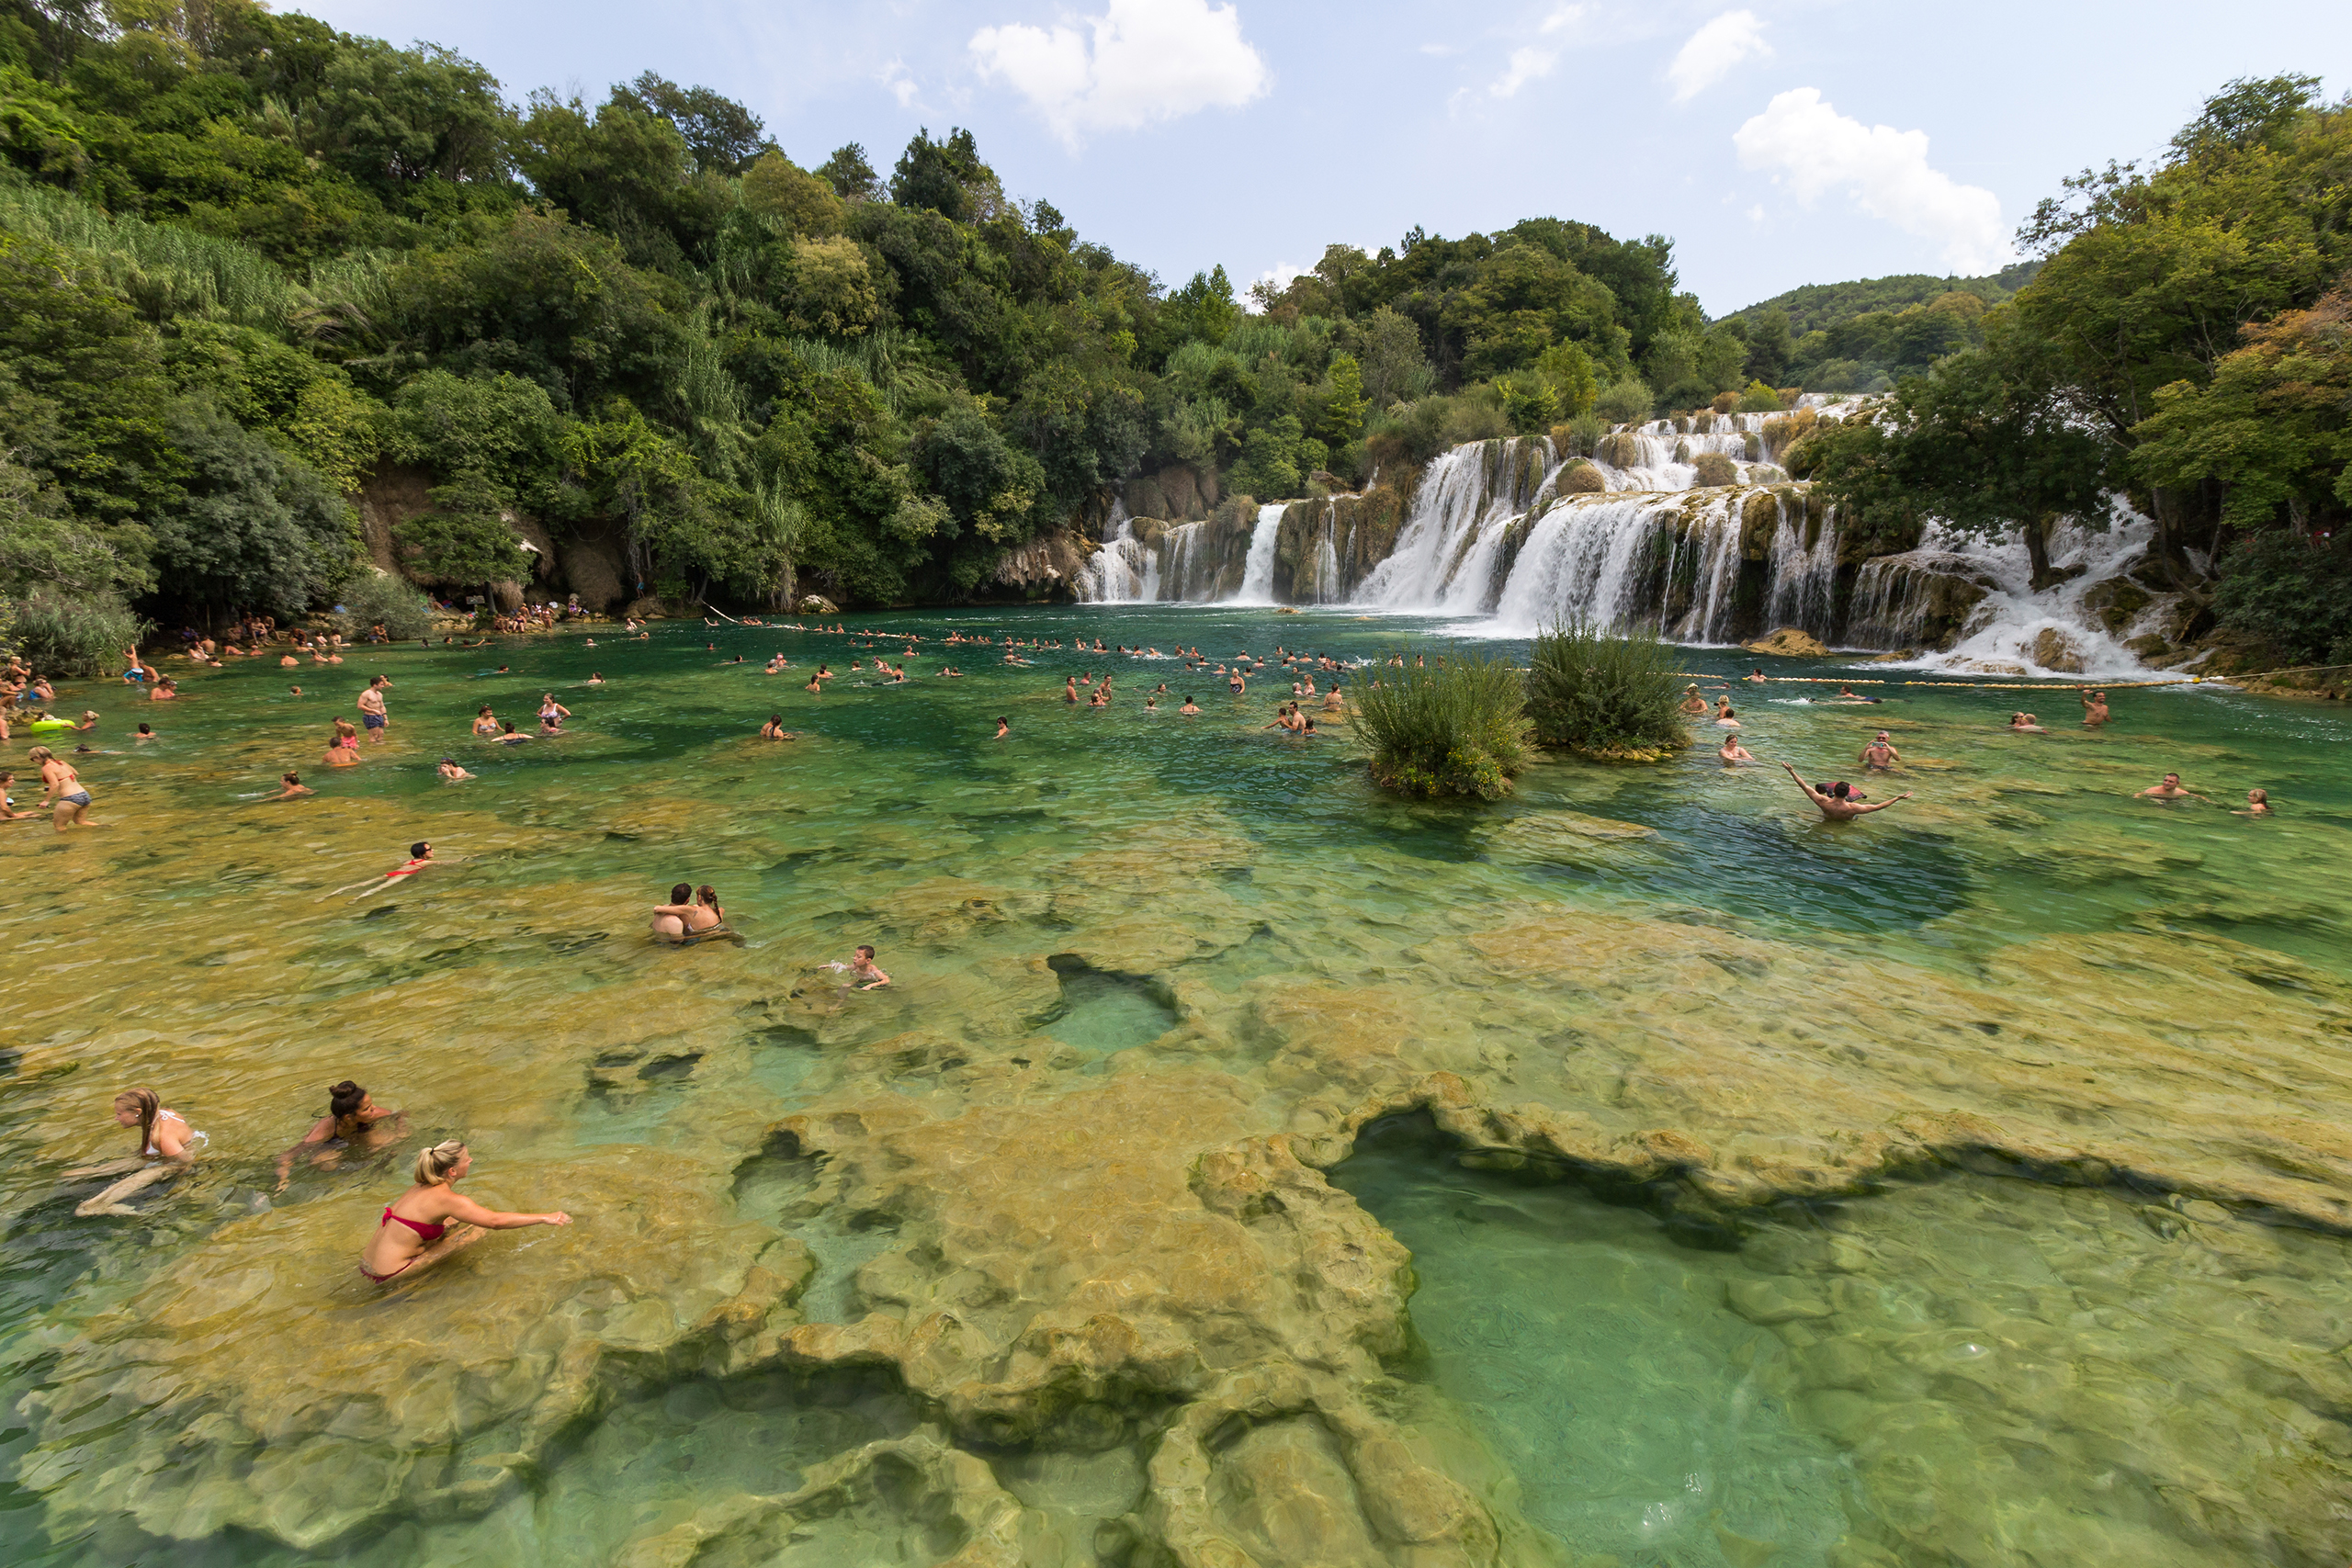 Skradinski buk, Krka National Park, Croatia. Encompassing 10900 hectares surrounding the Krka River, this park is home to 10 endemic fish species and is one of the most ornithologically valuable regions in Europe.